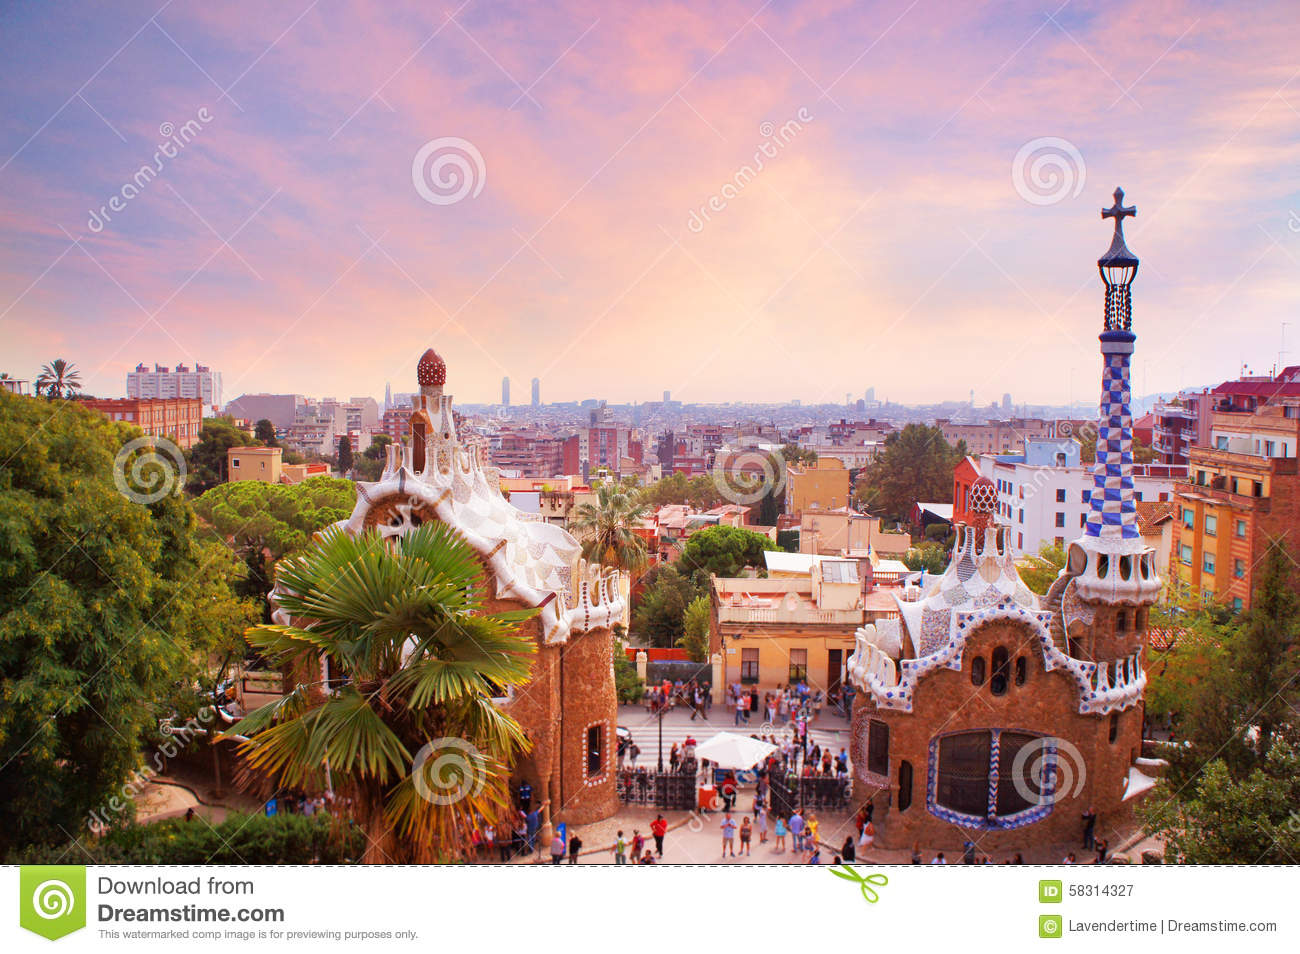 Courtyard Plans Park Guell In Barcelona At Sunset Stock Photo Image